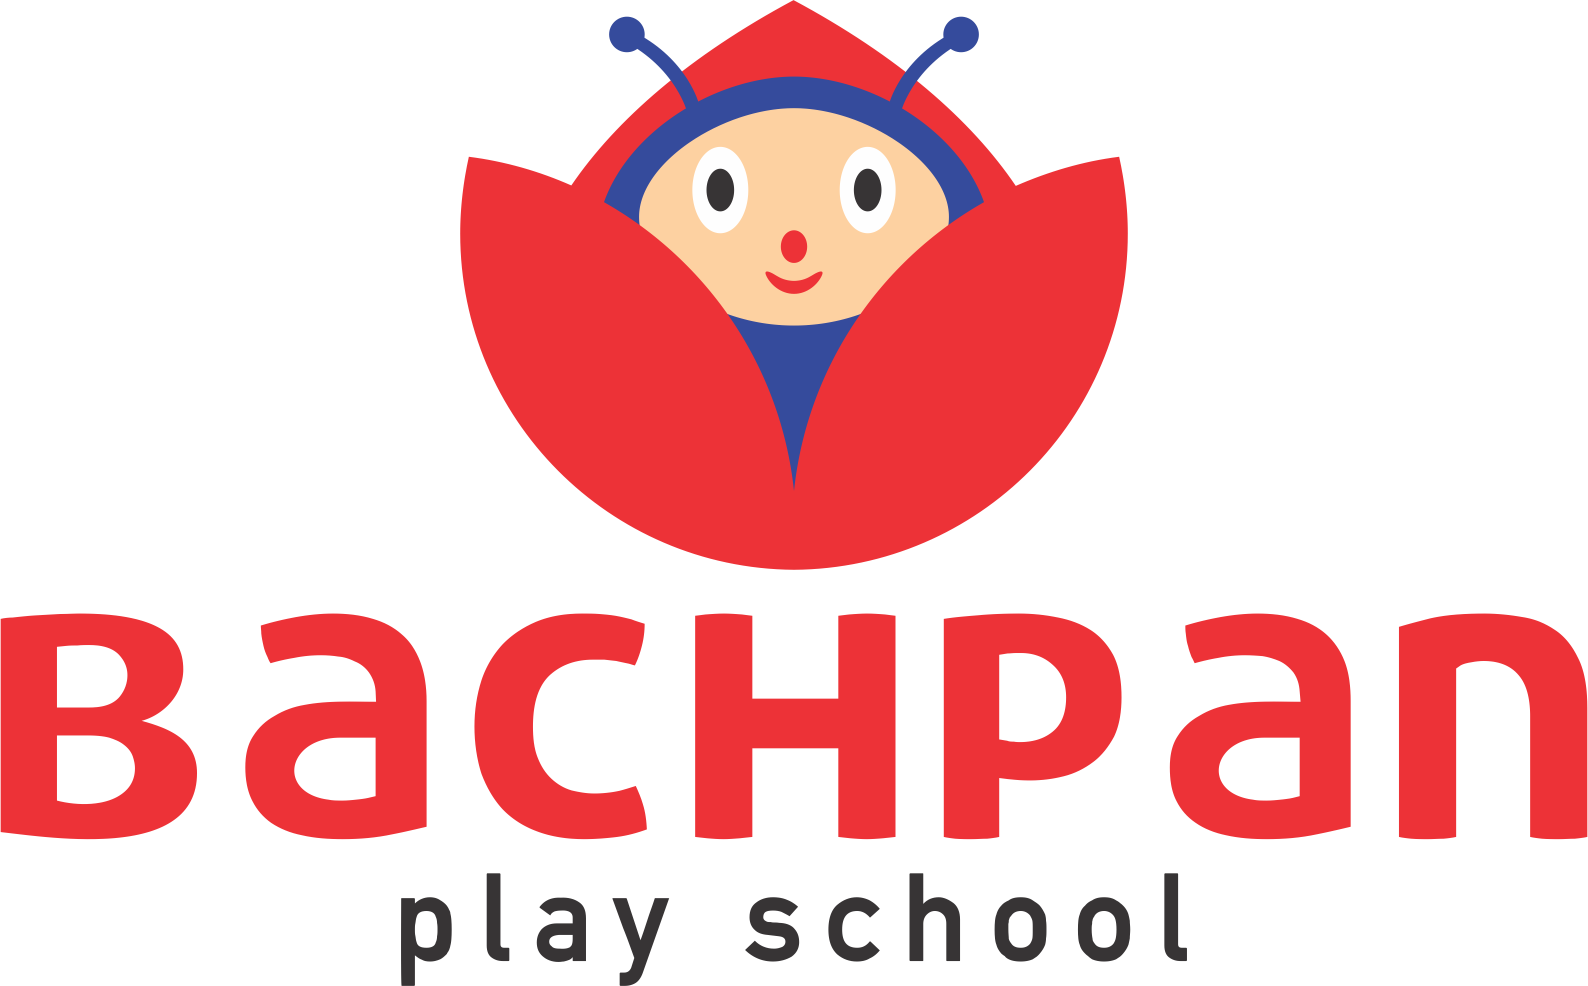 BACHPAN-Best Play School in India | Nursery Pre-School for Kids